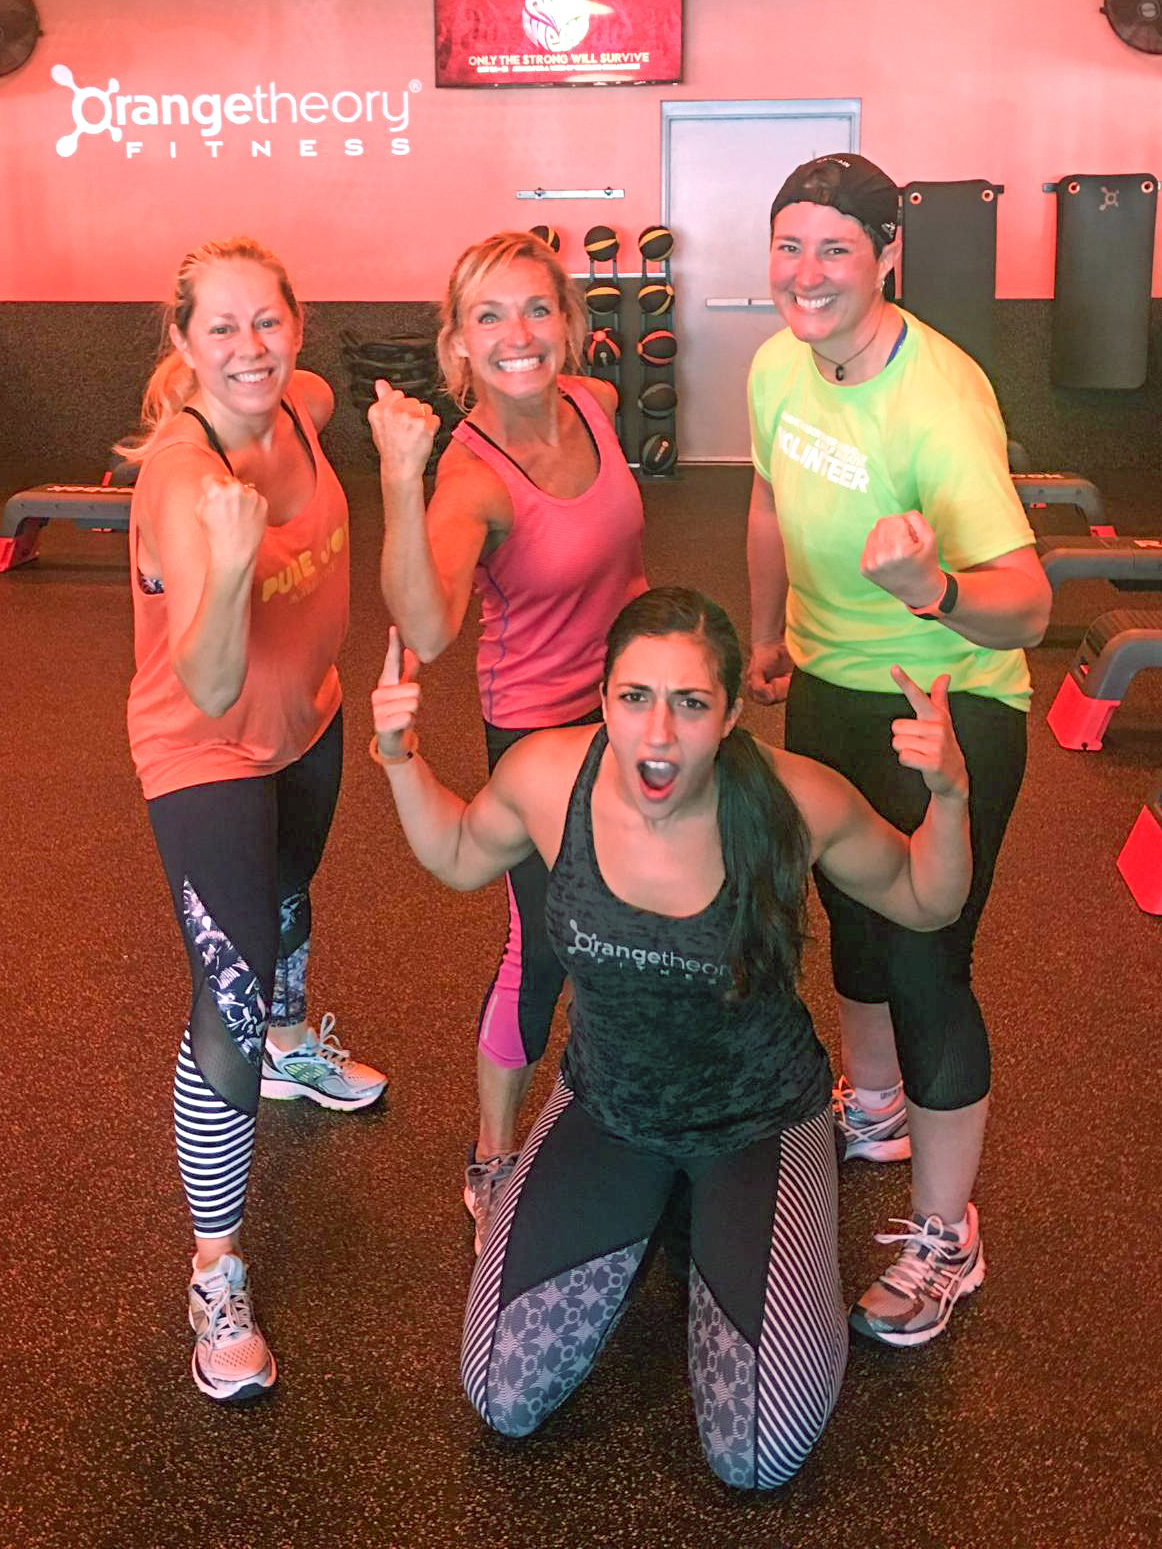 Training buddies at OrangeTheory Fitness.